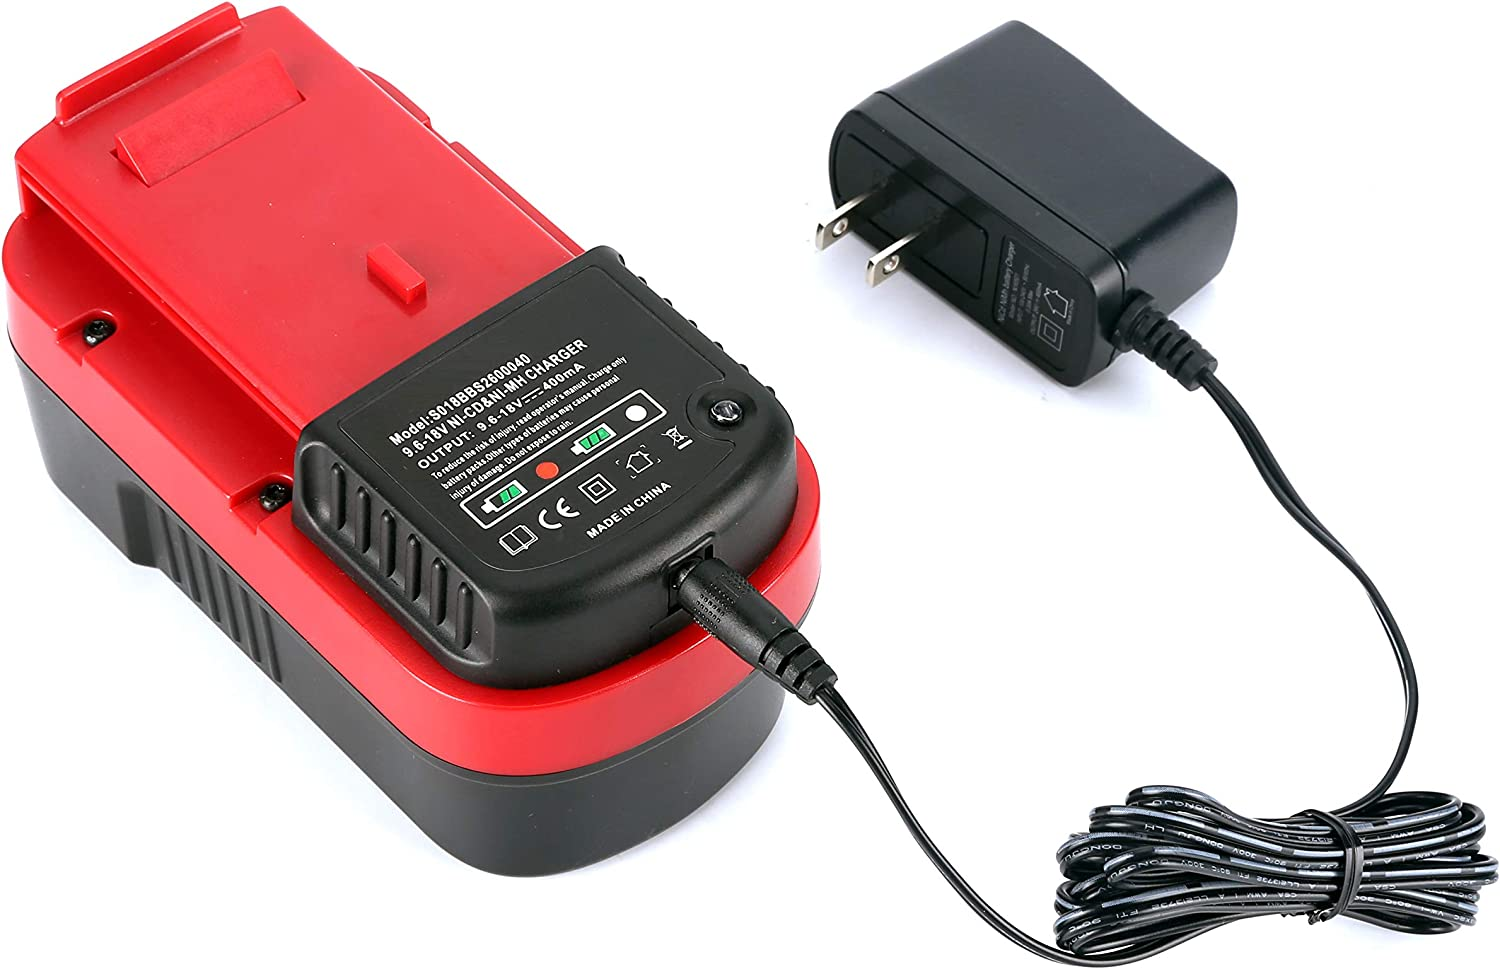 UNGINO S018BBS2600040 Battery Charger for Black Decker 9.6V-18V NI-CD/&NI-MH Slide Style Batteries HPB18 HPB18-OPE HPB